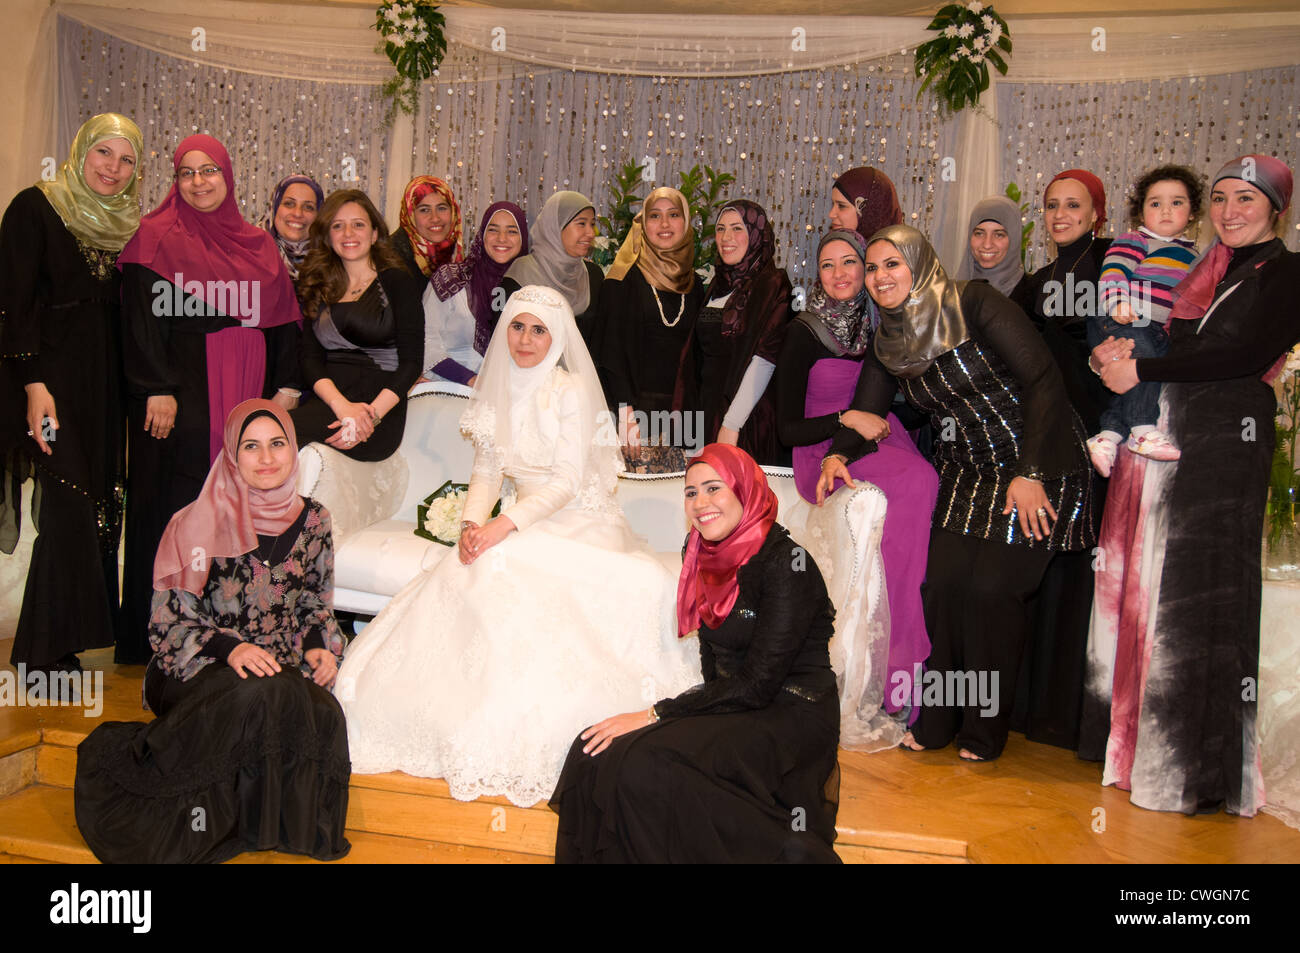 Female friends and relatives with bride at wedding cairo egypt stock female friends and relatives with bride at wedding cairo egypt junglespirit Images